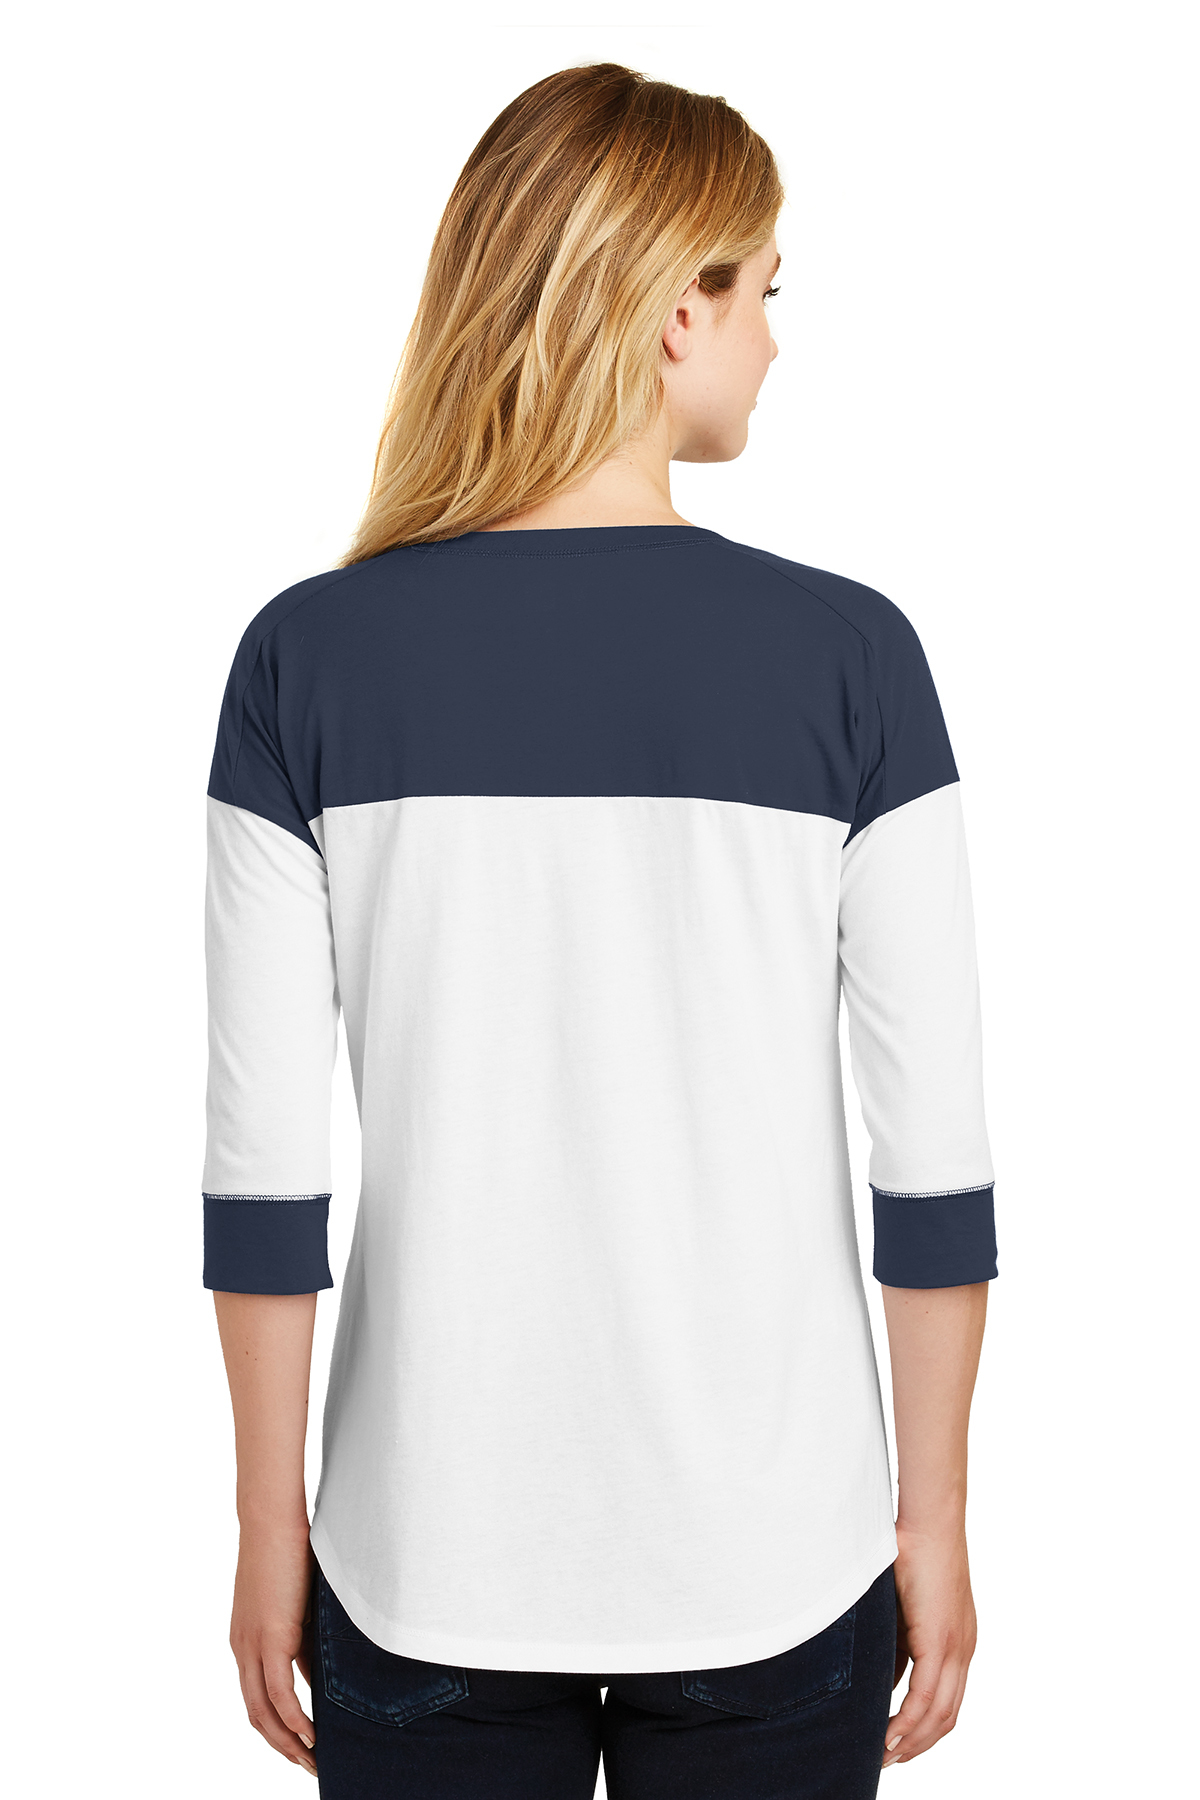 094125394 ... New Era® Ladies Heritage Blend 3/4-Sleeve Baseball Raglan Tee. A  maximum of 8 logos have been uploaded. Please remove a logo from My Logos  to continue